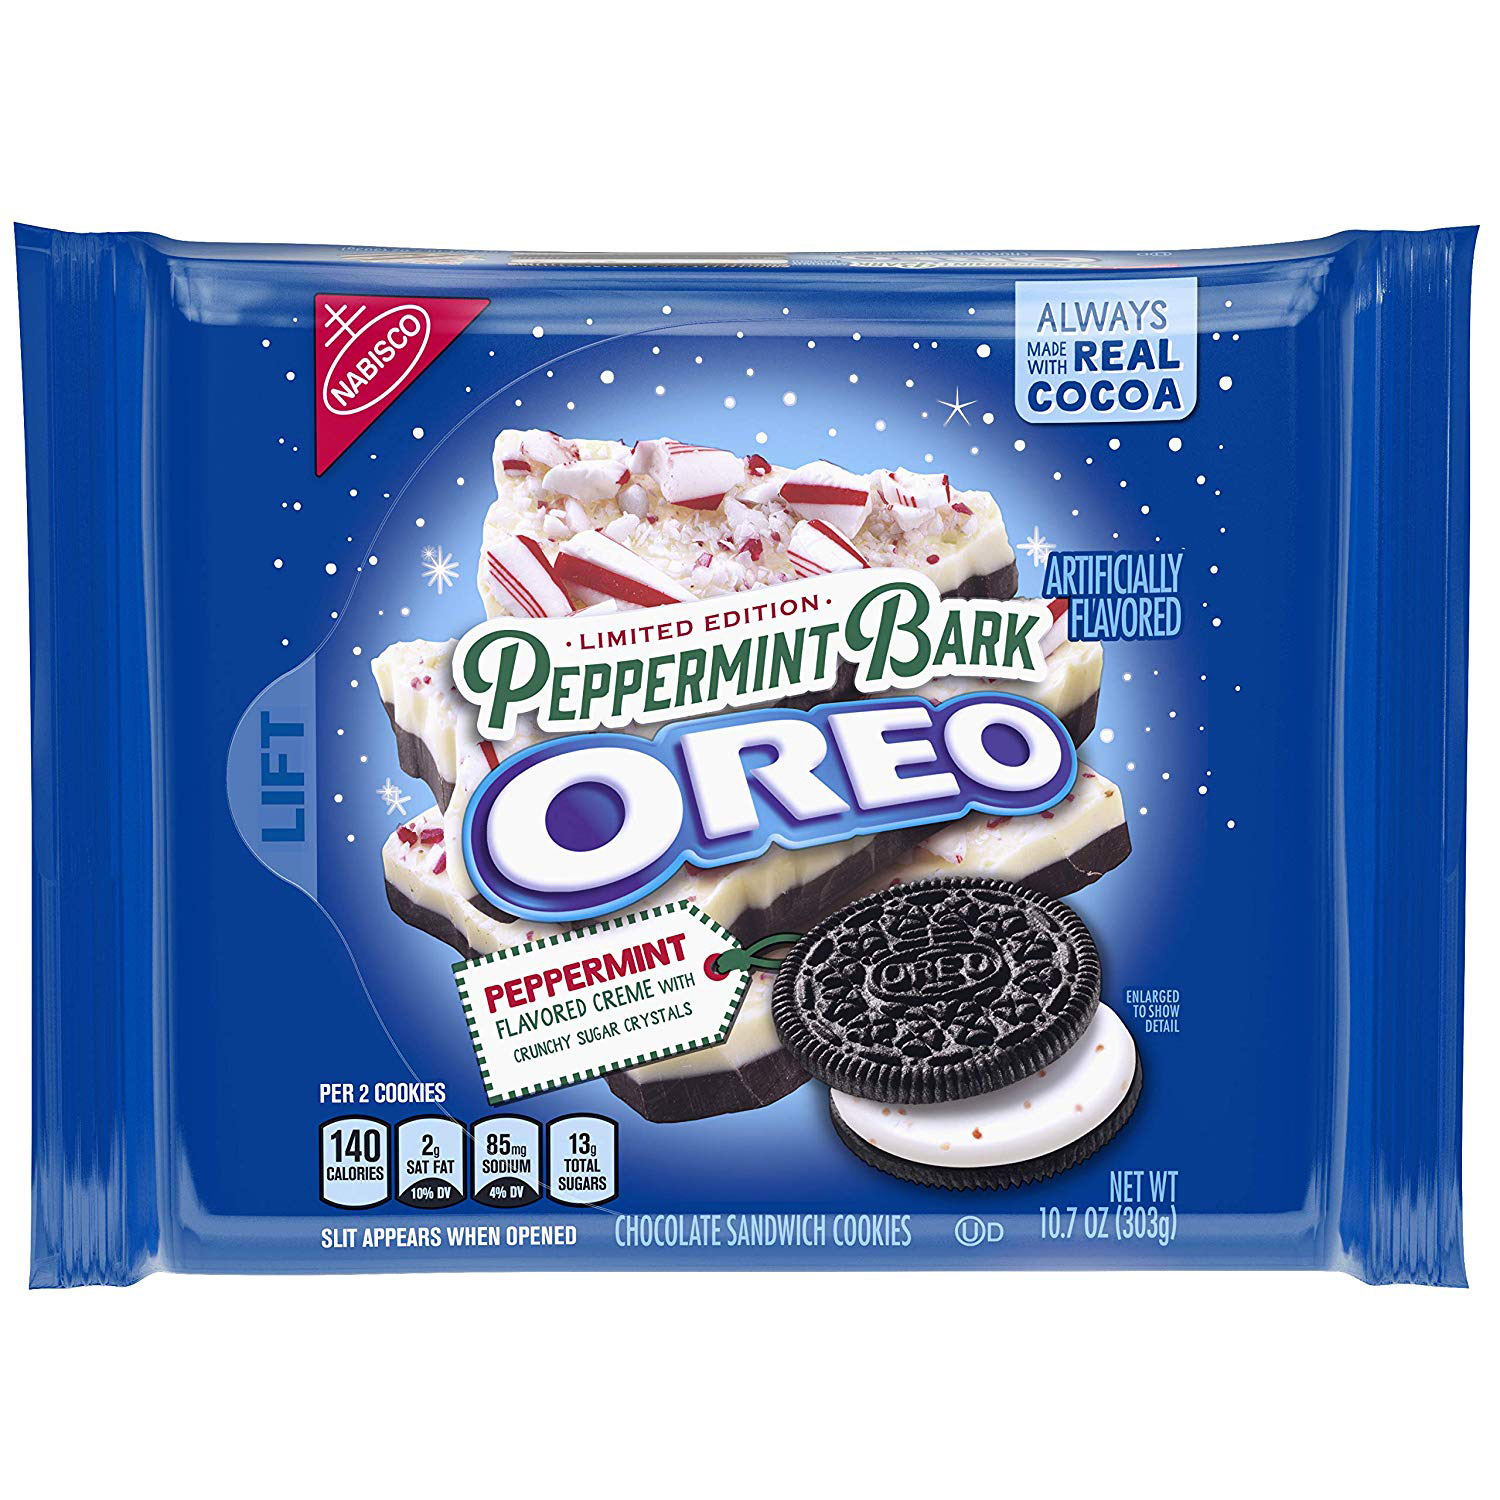 Peppermint Bark Oreos Launch for the 2018 Holiday Season